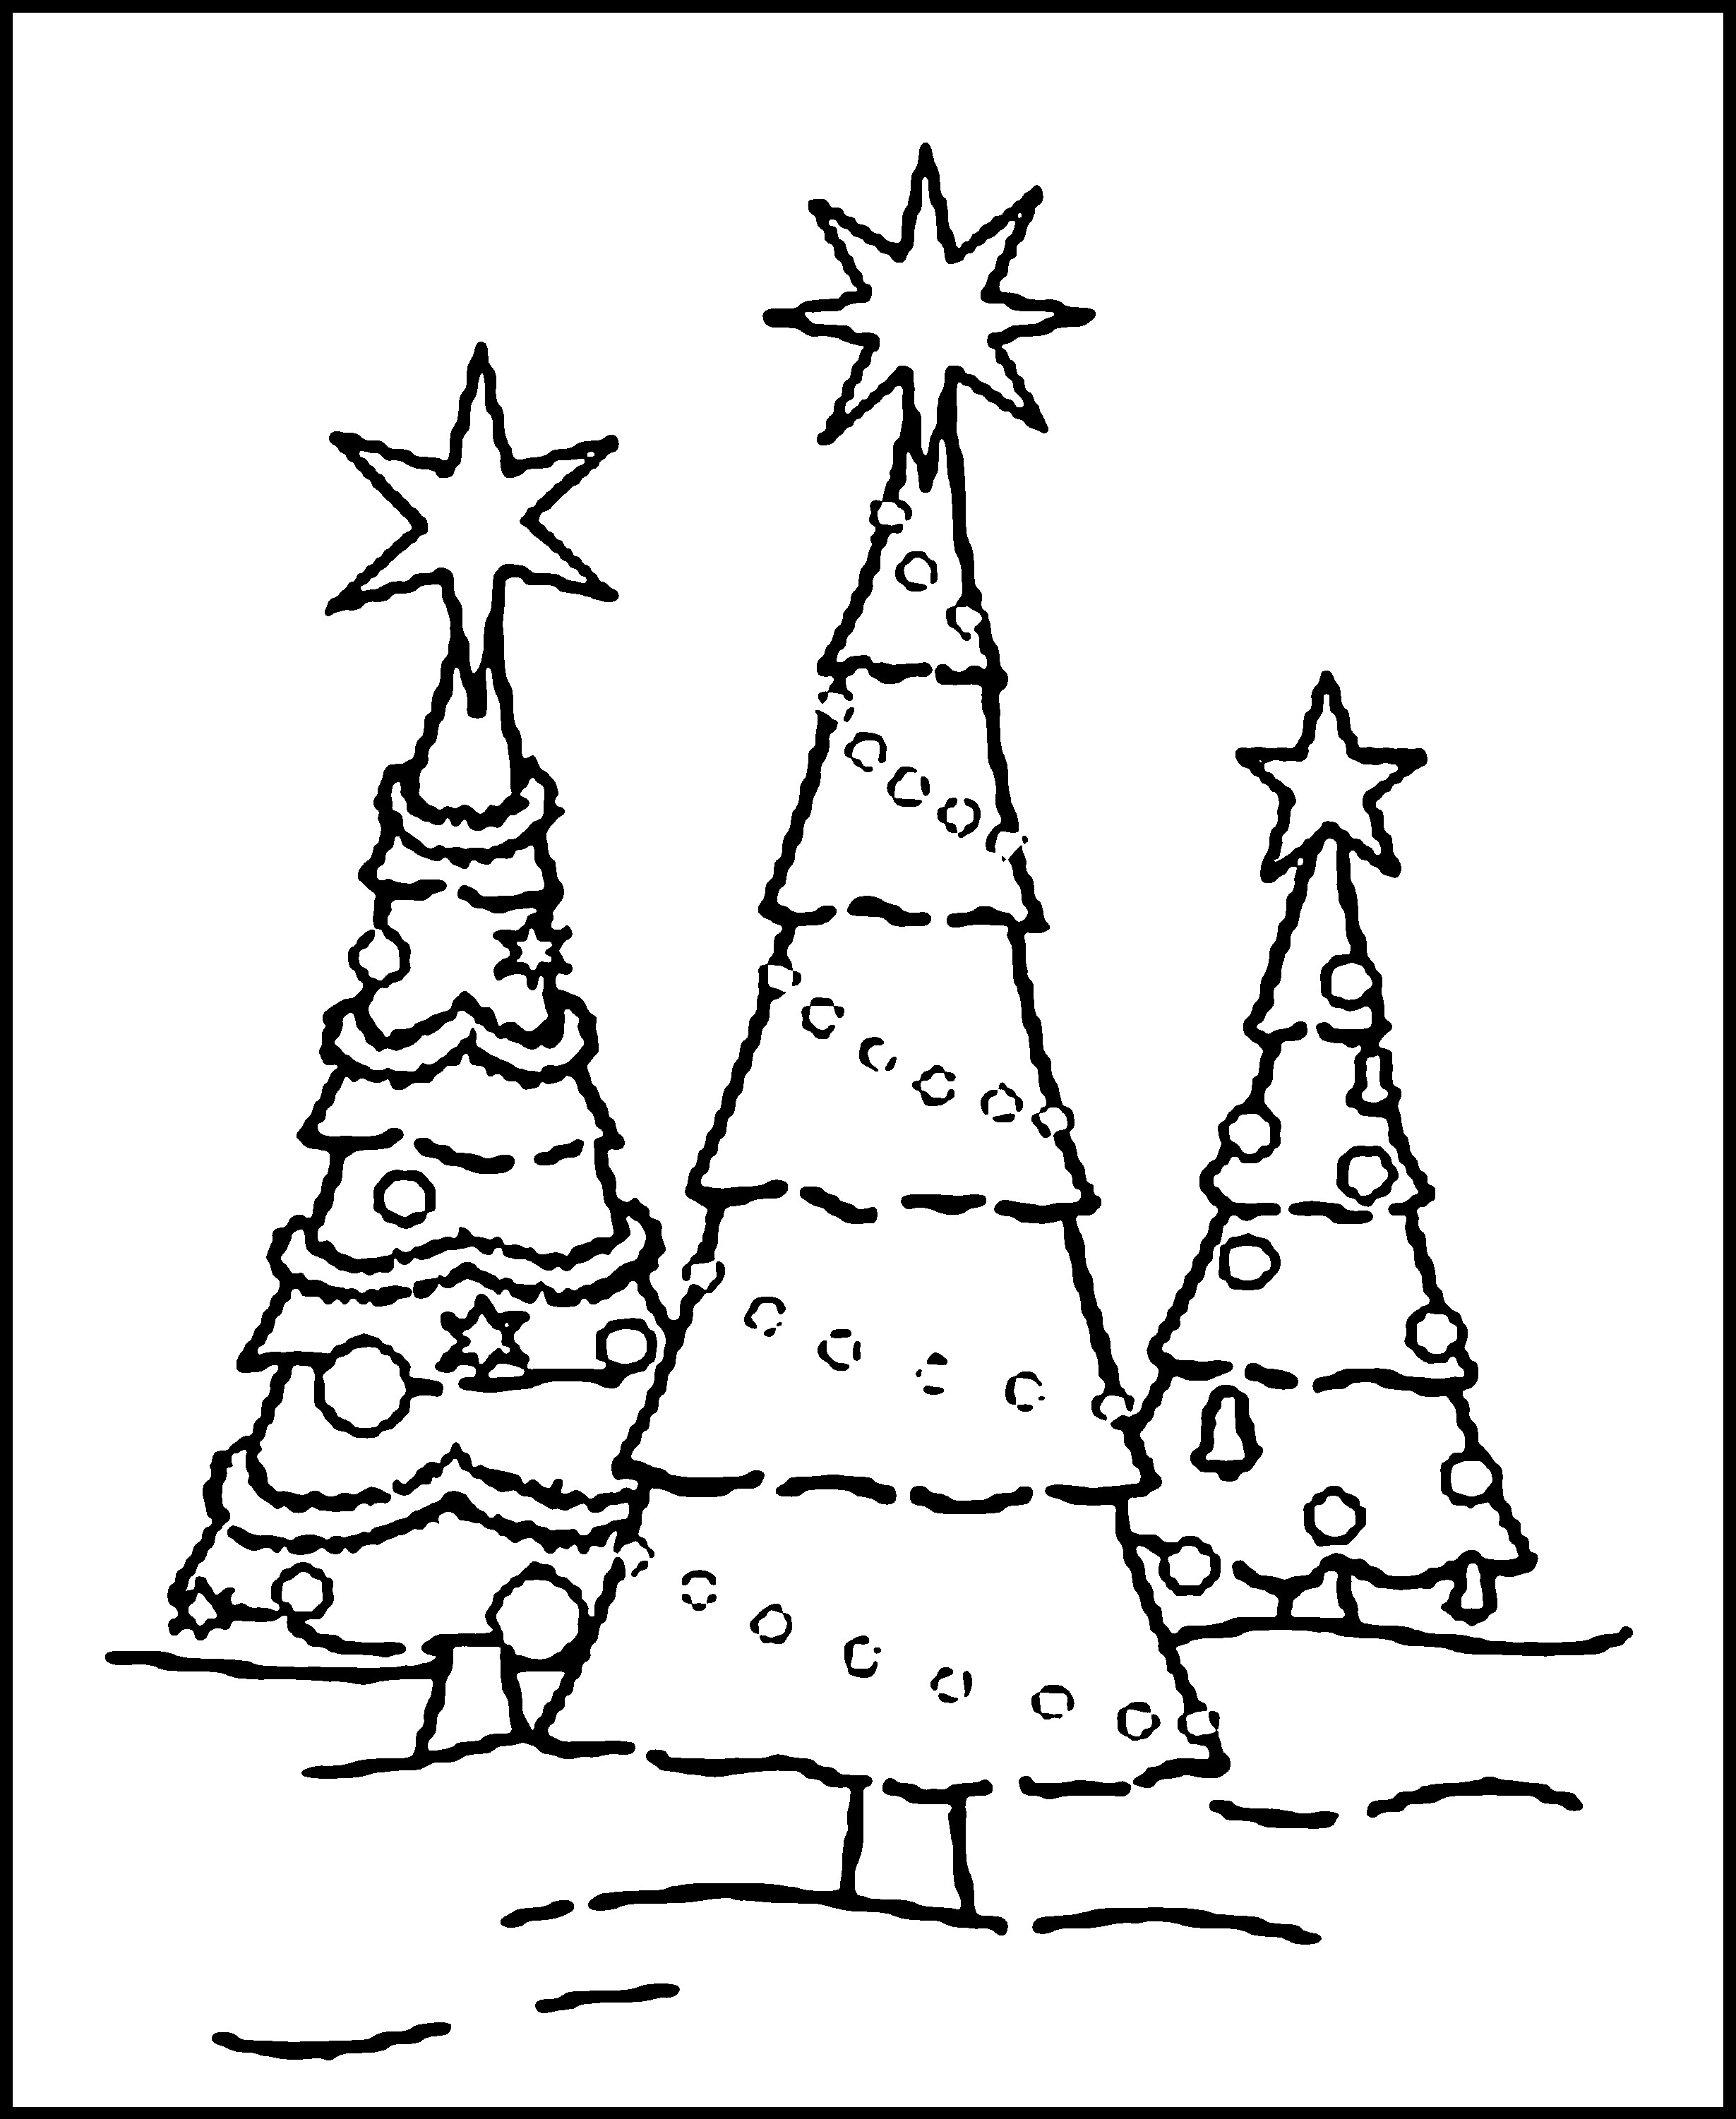 Big Christmas Tree Coloring Pages Printable With Trees New Free